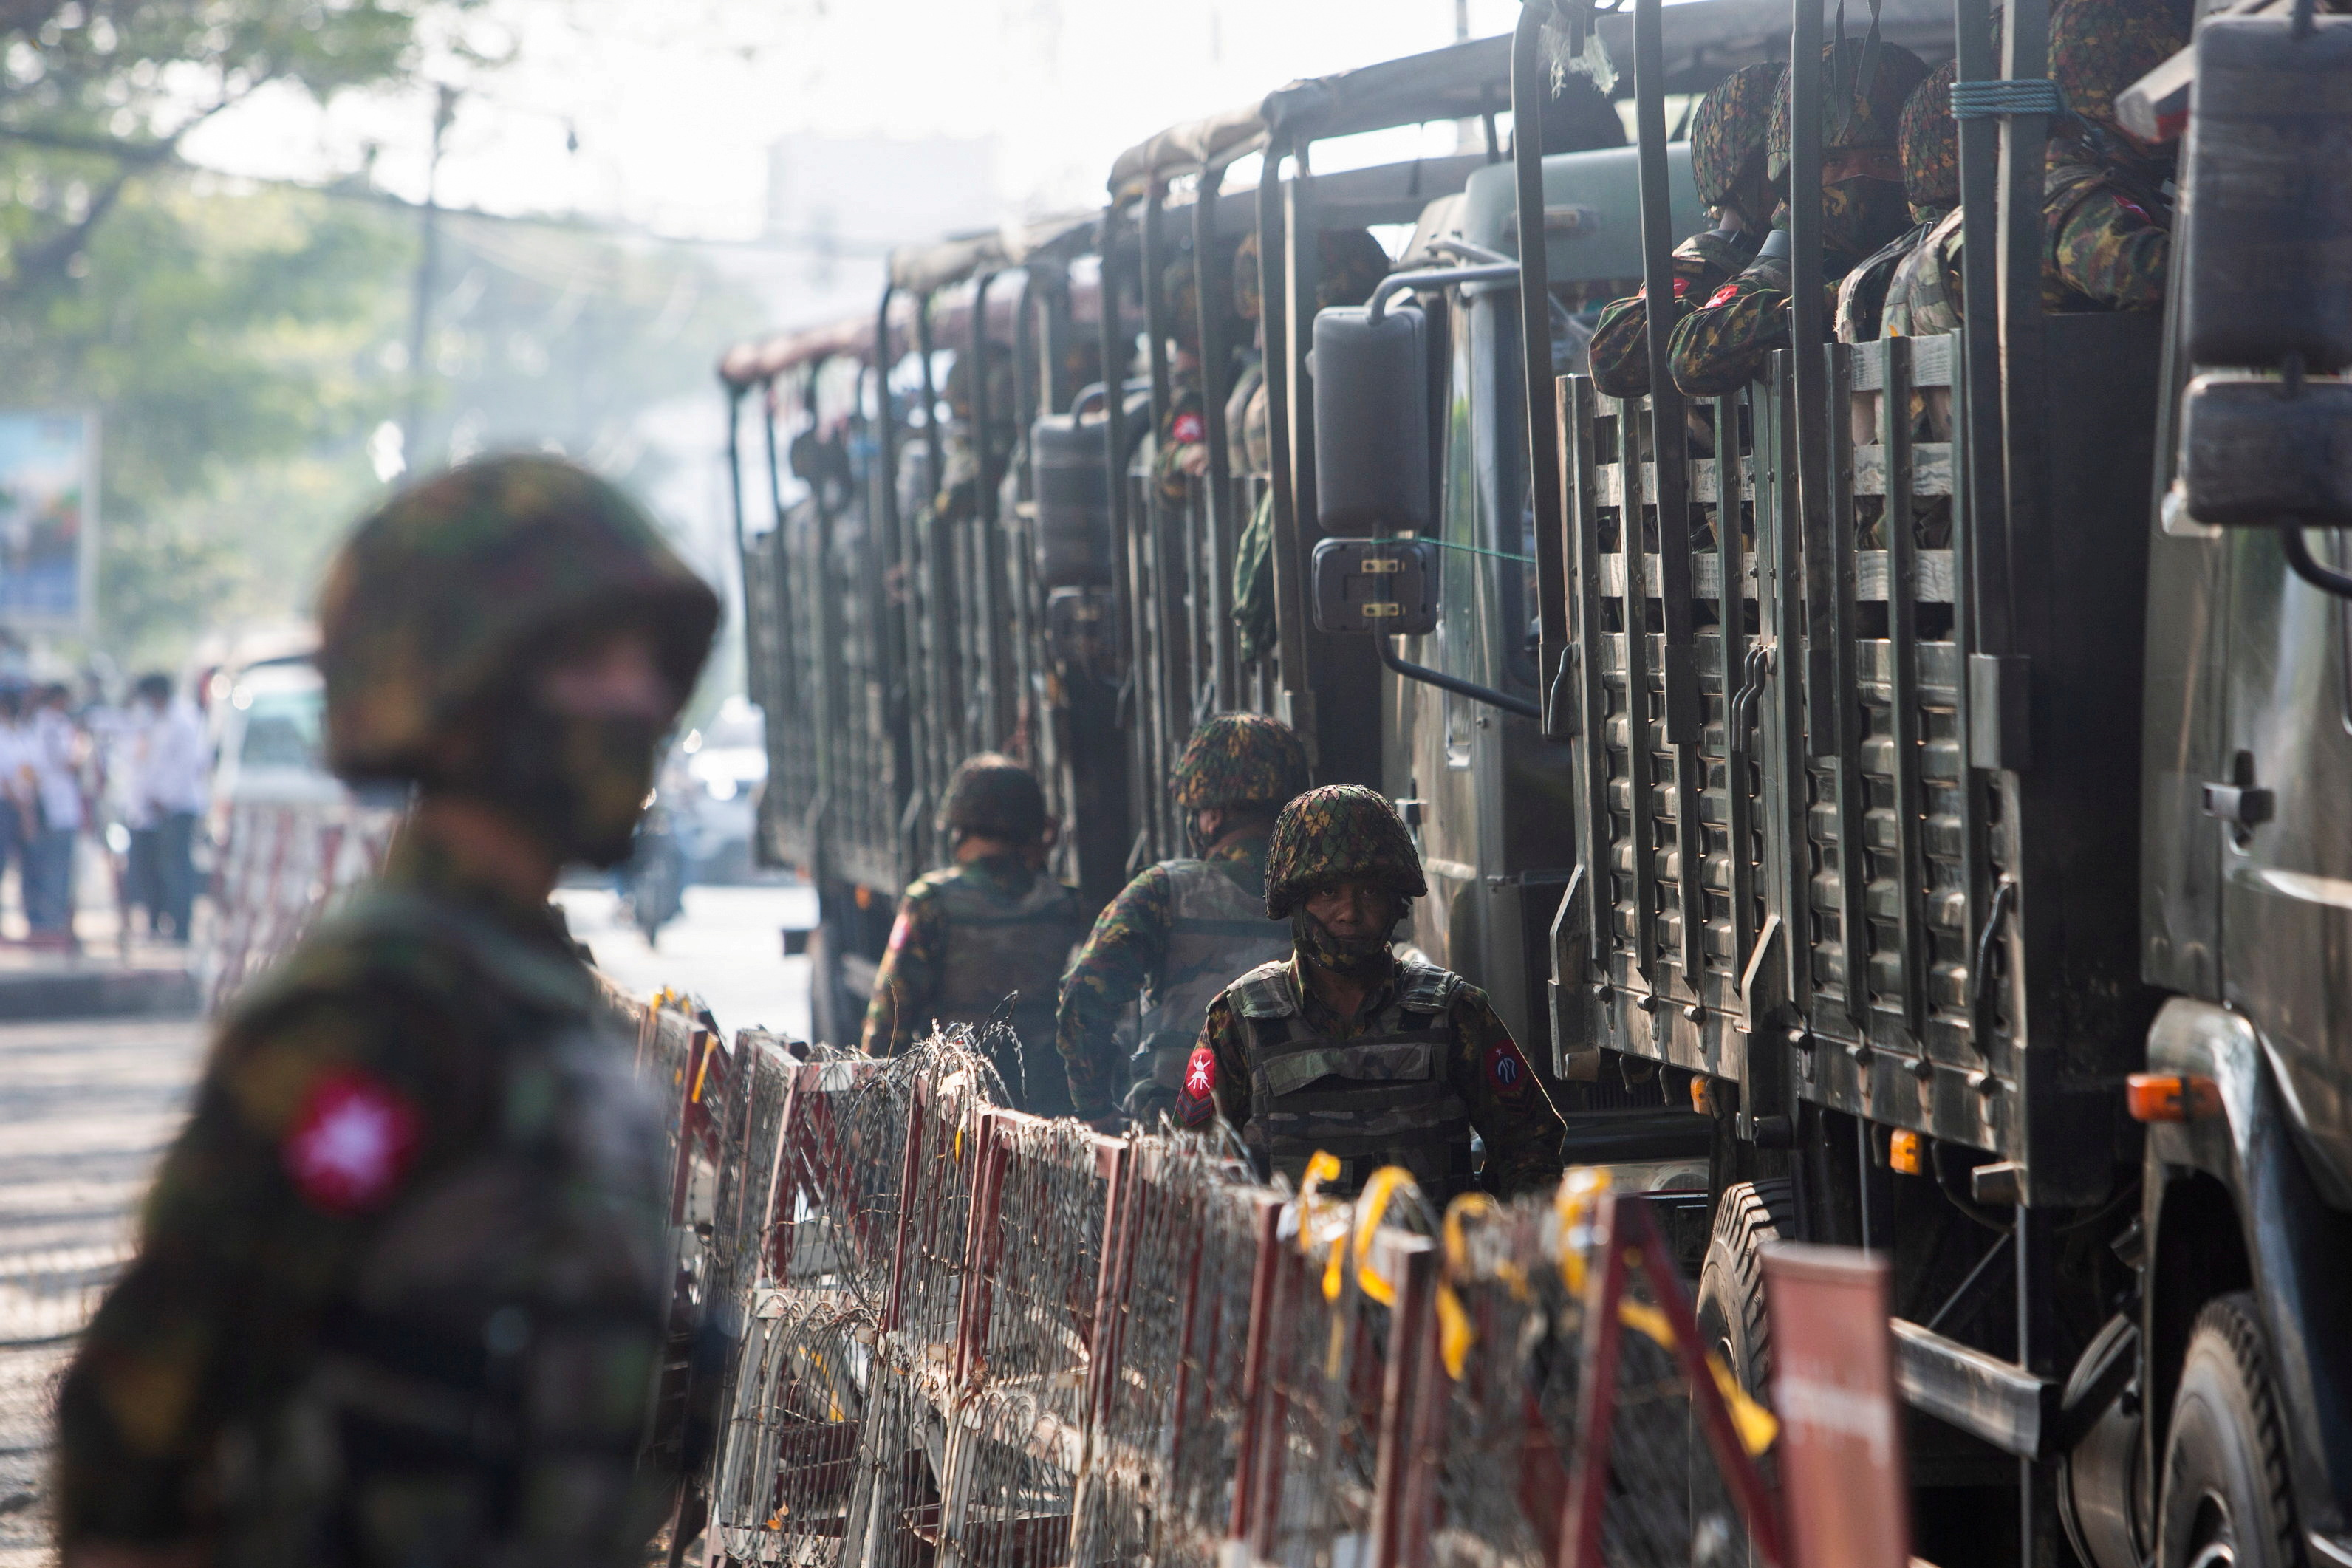 Soldiers stand next to military vehicles as people gather to protest against the military coup, in Yangon, Myanmar, February 15, 2021. REUTERS/Stringer/File Photo